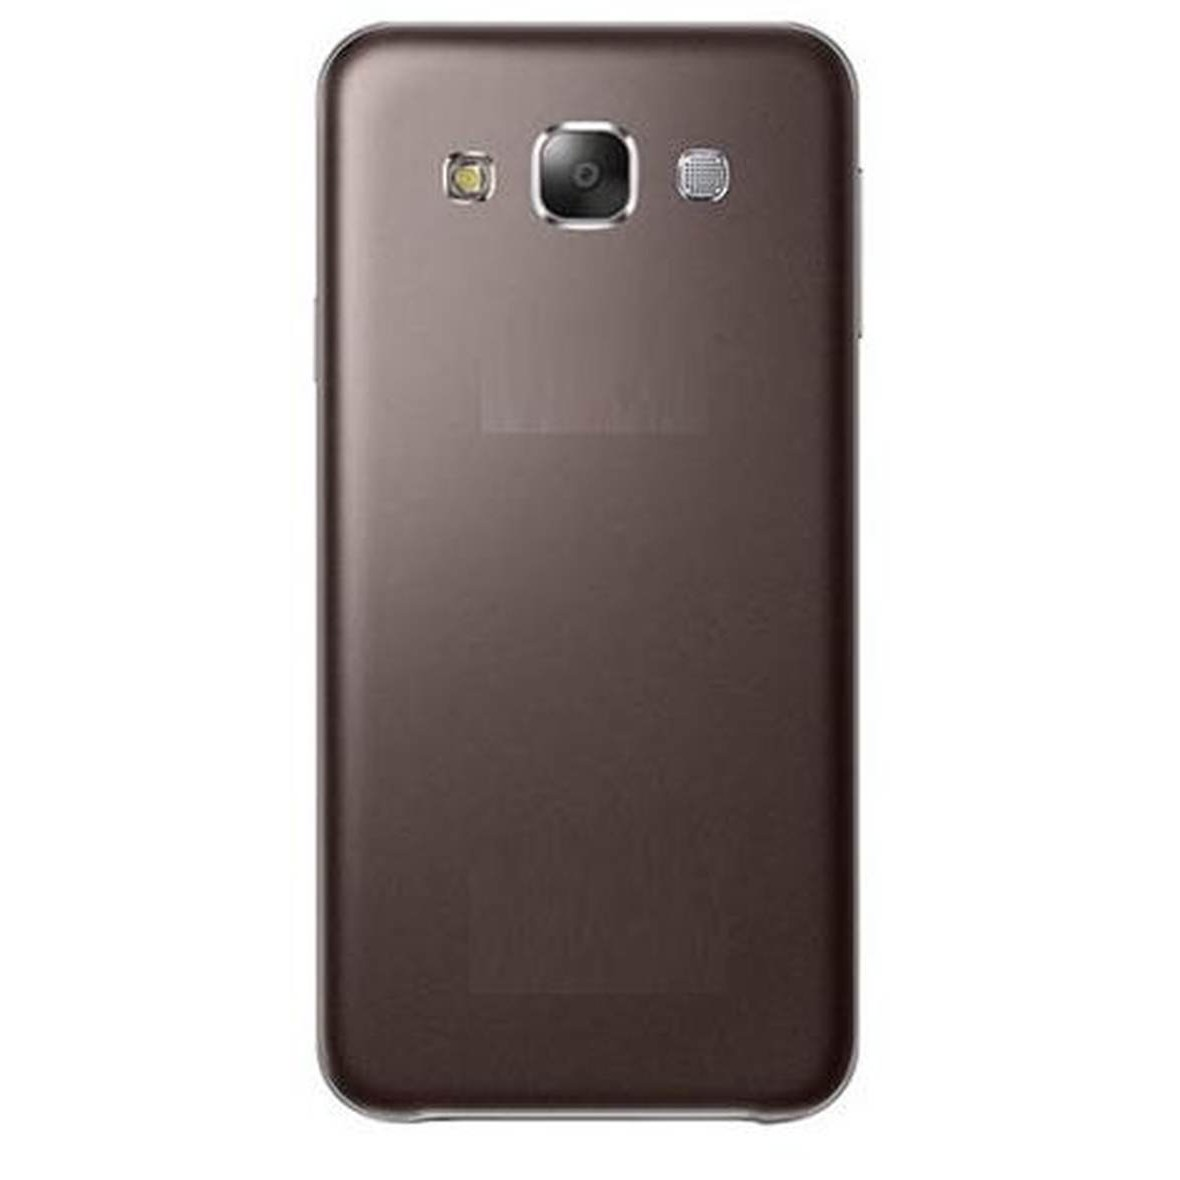 online store 0d630 ccac5 Full Body Housing for Samsung Galaxy E5 - Brown